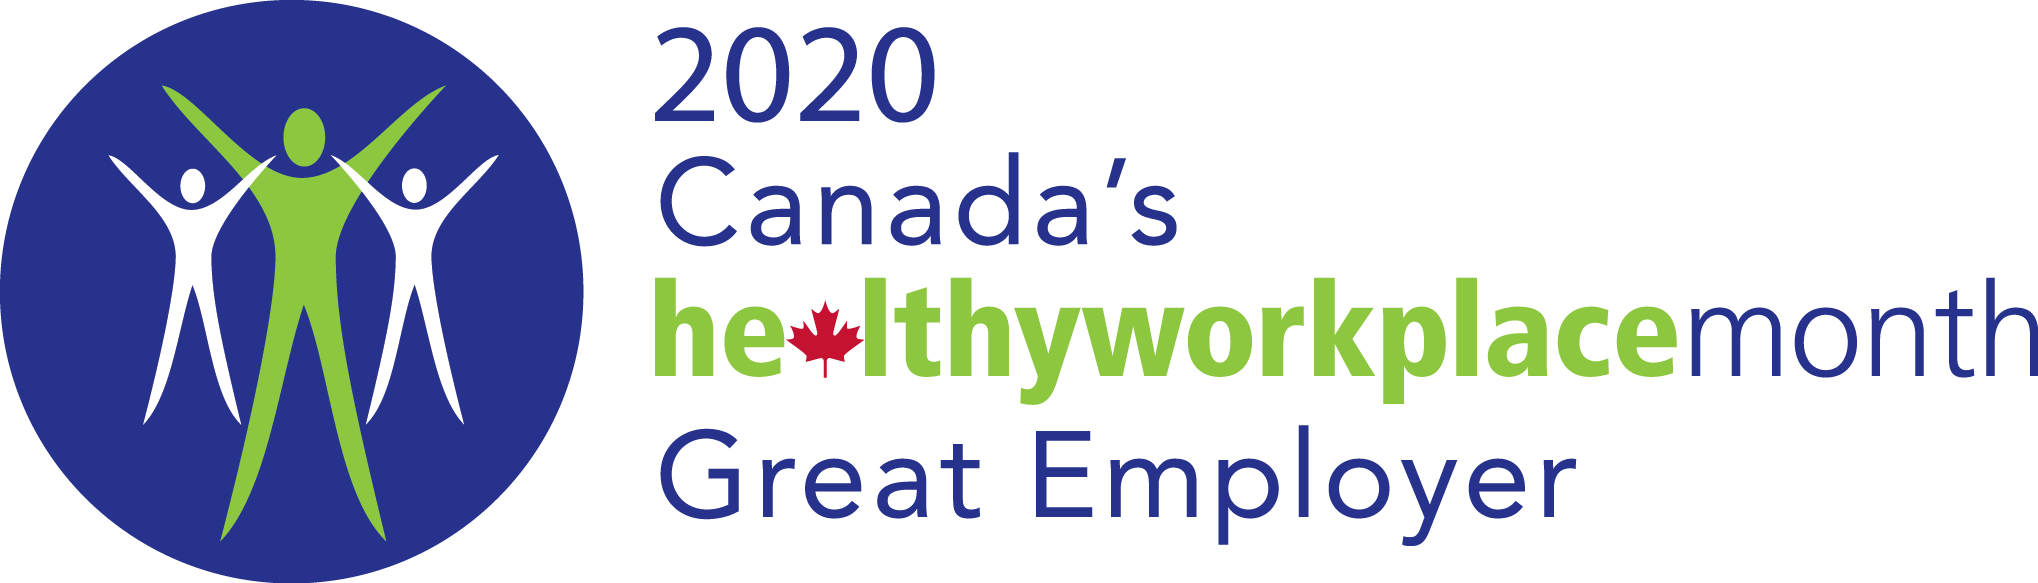 Excellence Canada's Healthy Workplace Great Employer Award